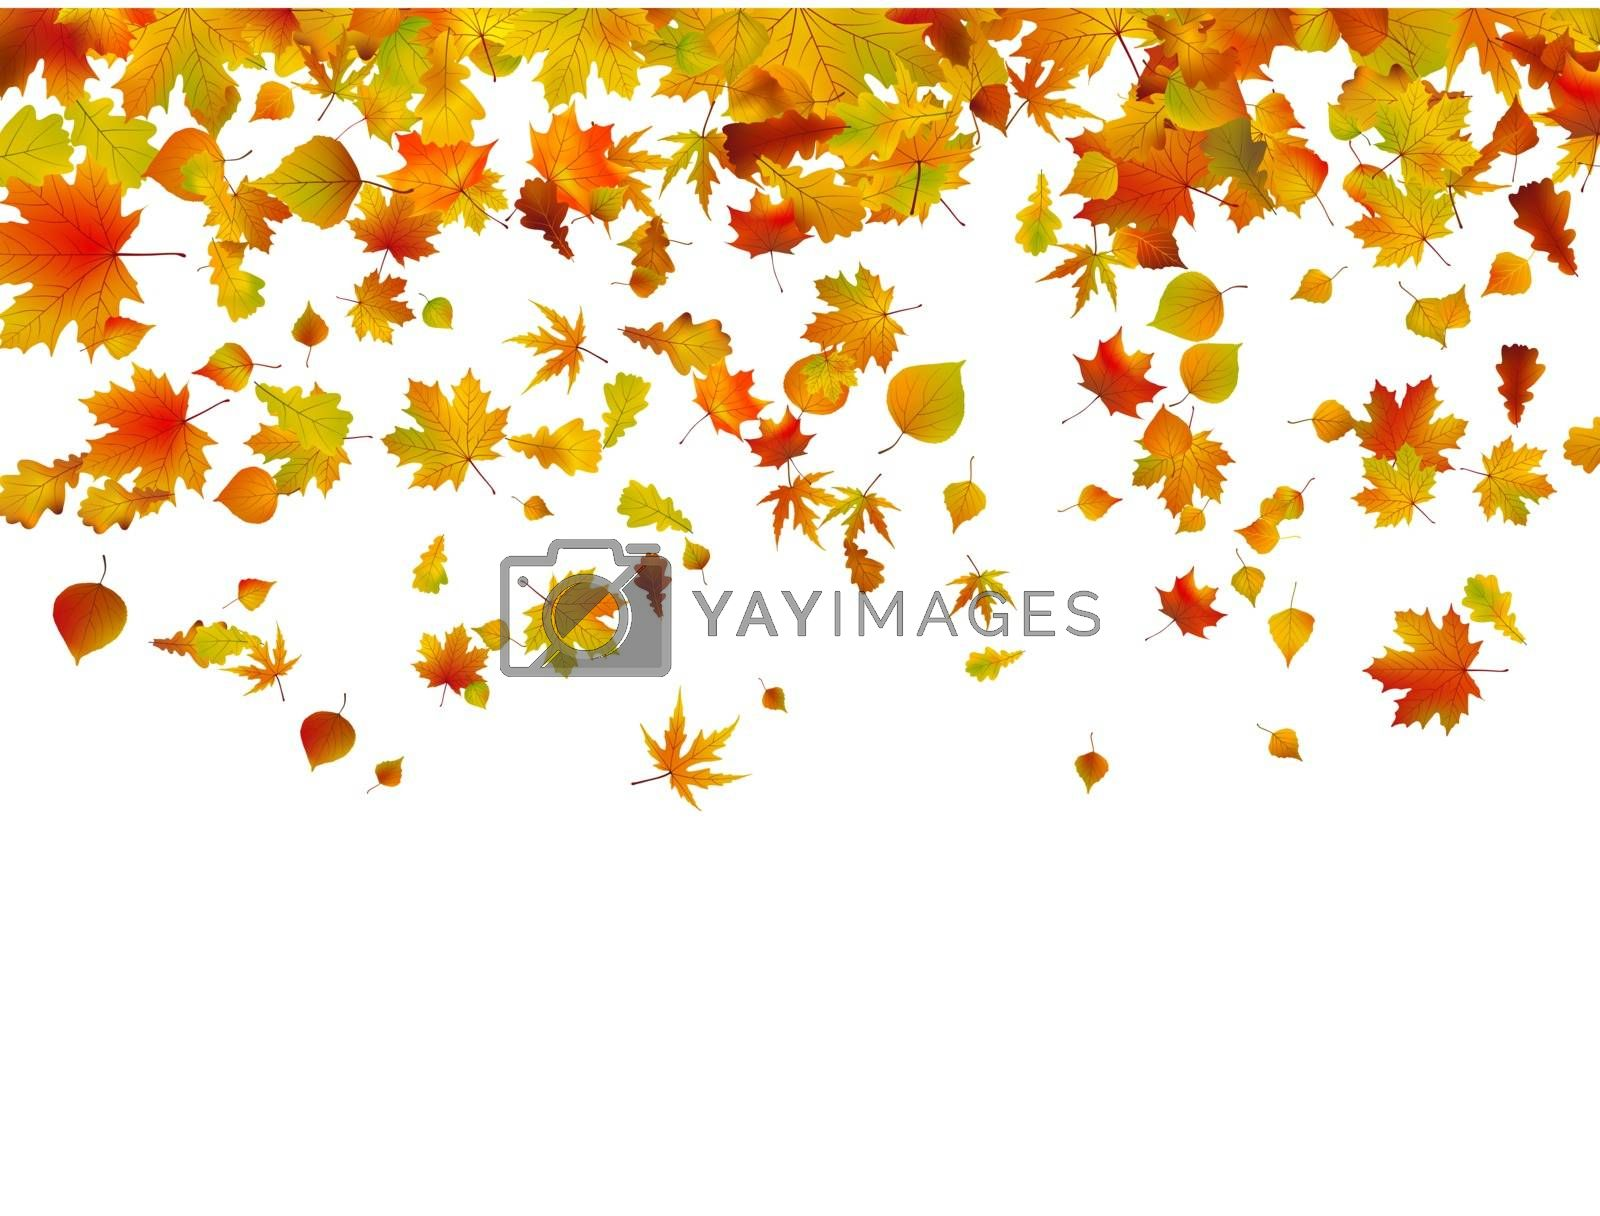 Background of autumn leaves. EPS 8 vector file included